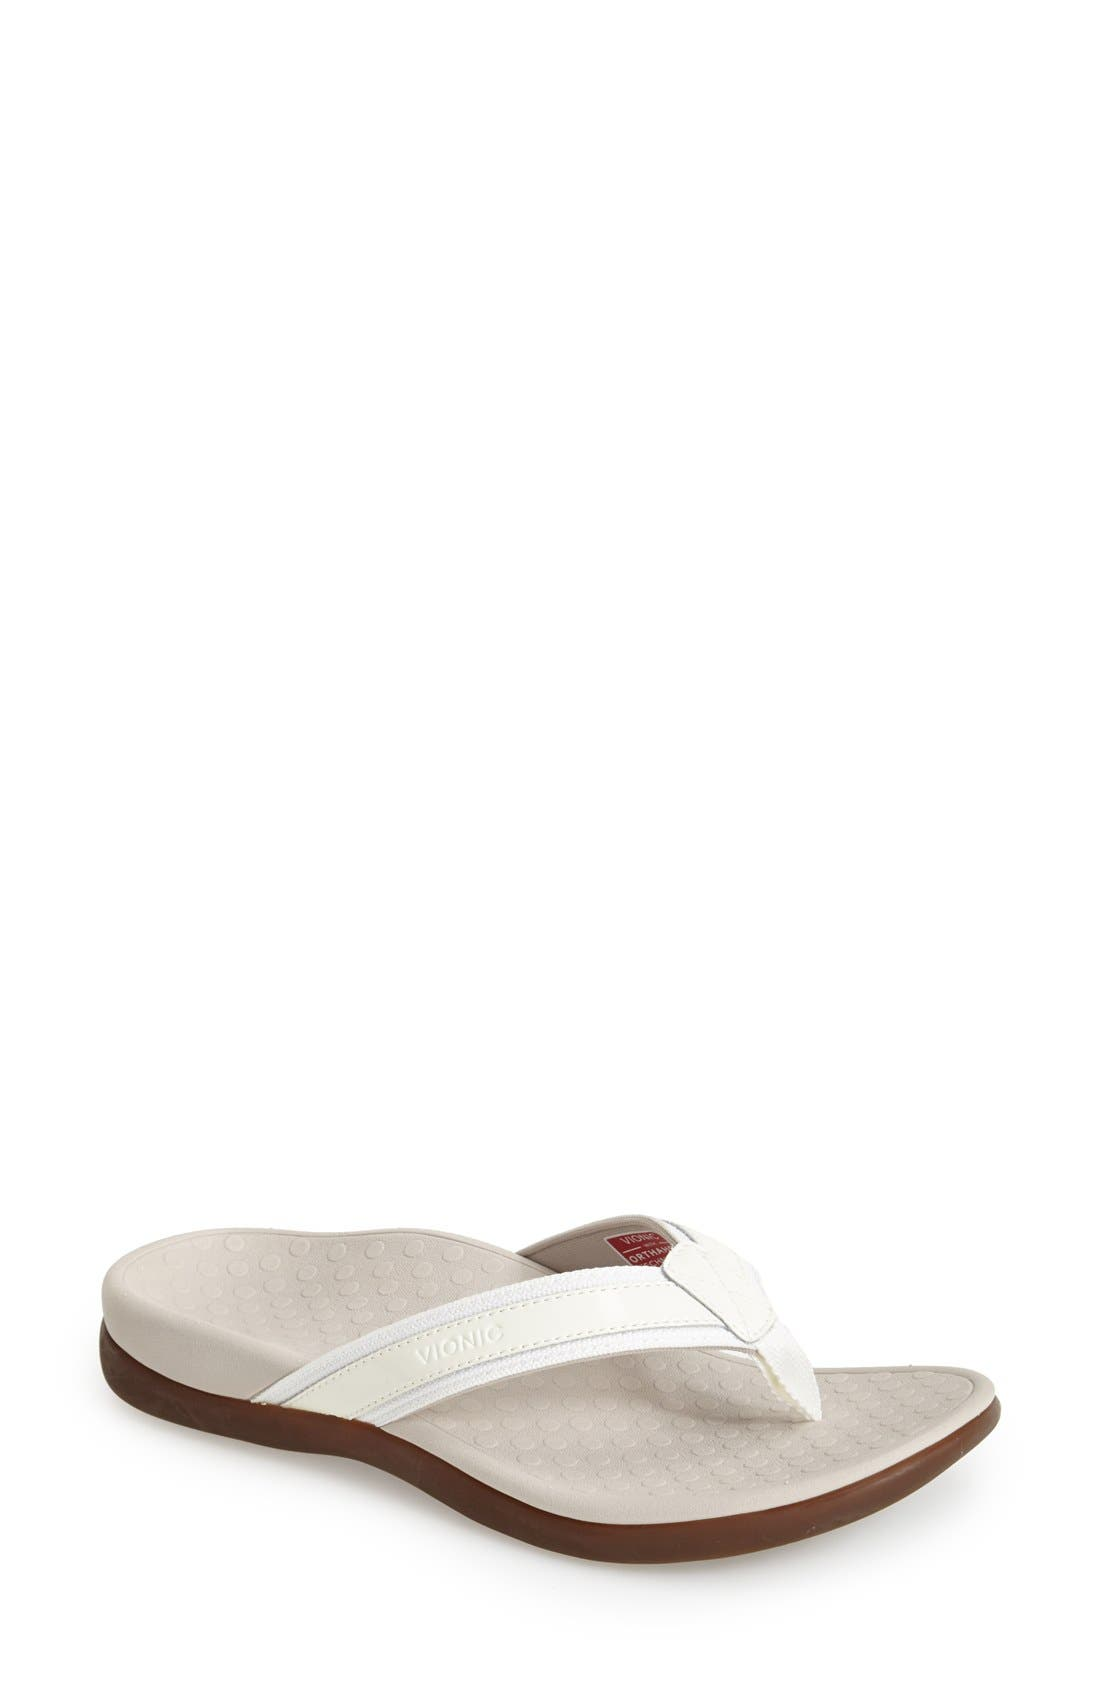 'Tide II' Flip Flop,                         Main,                         color, WHITE